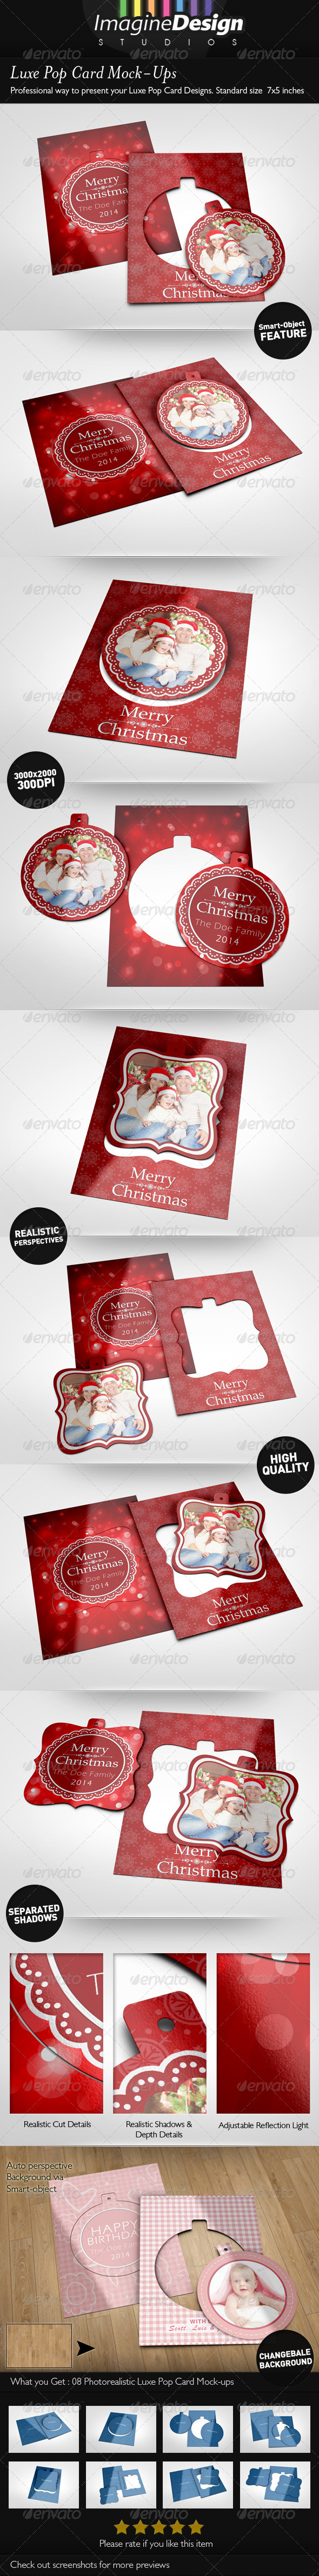 GraphicRiver Luxe Pop Card Mock-Ups 5864456